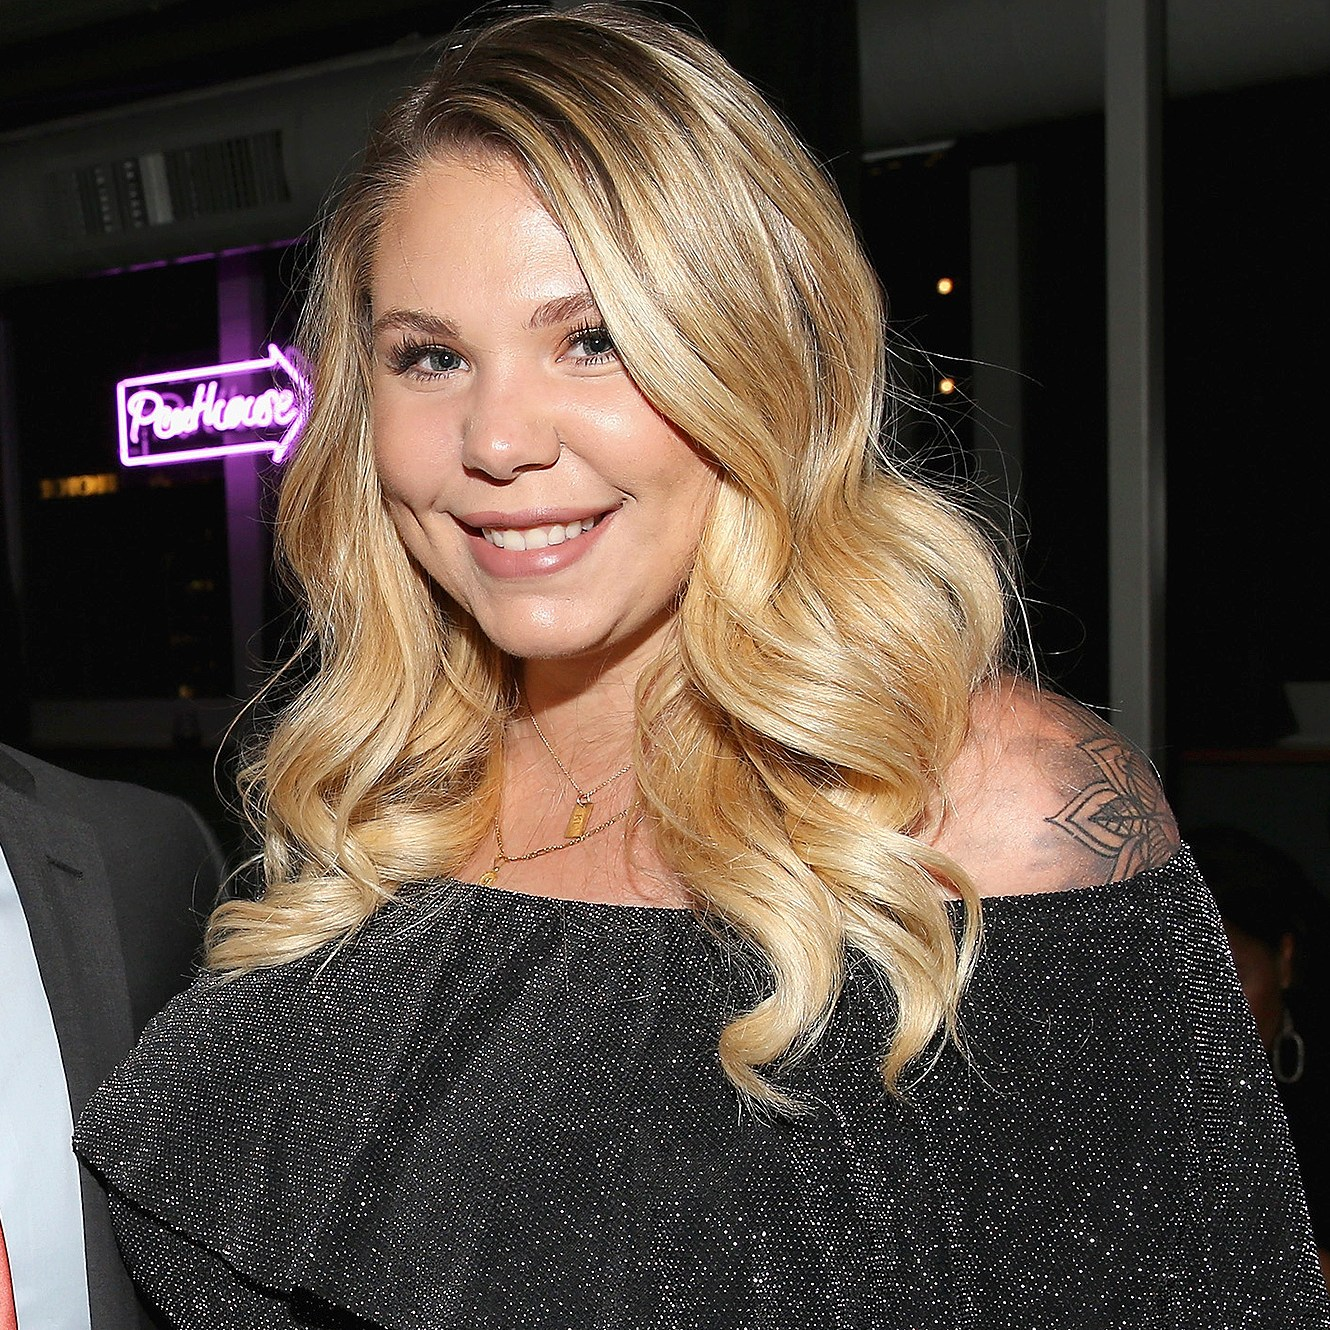 Kailyn Lowry, Marriage Boot Camp, Javi Marroquin